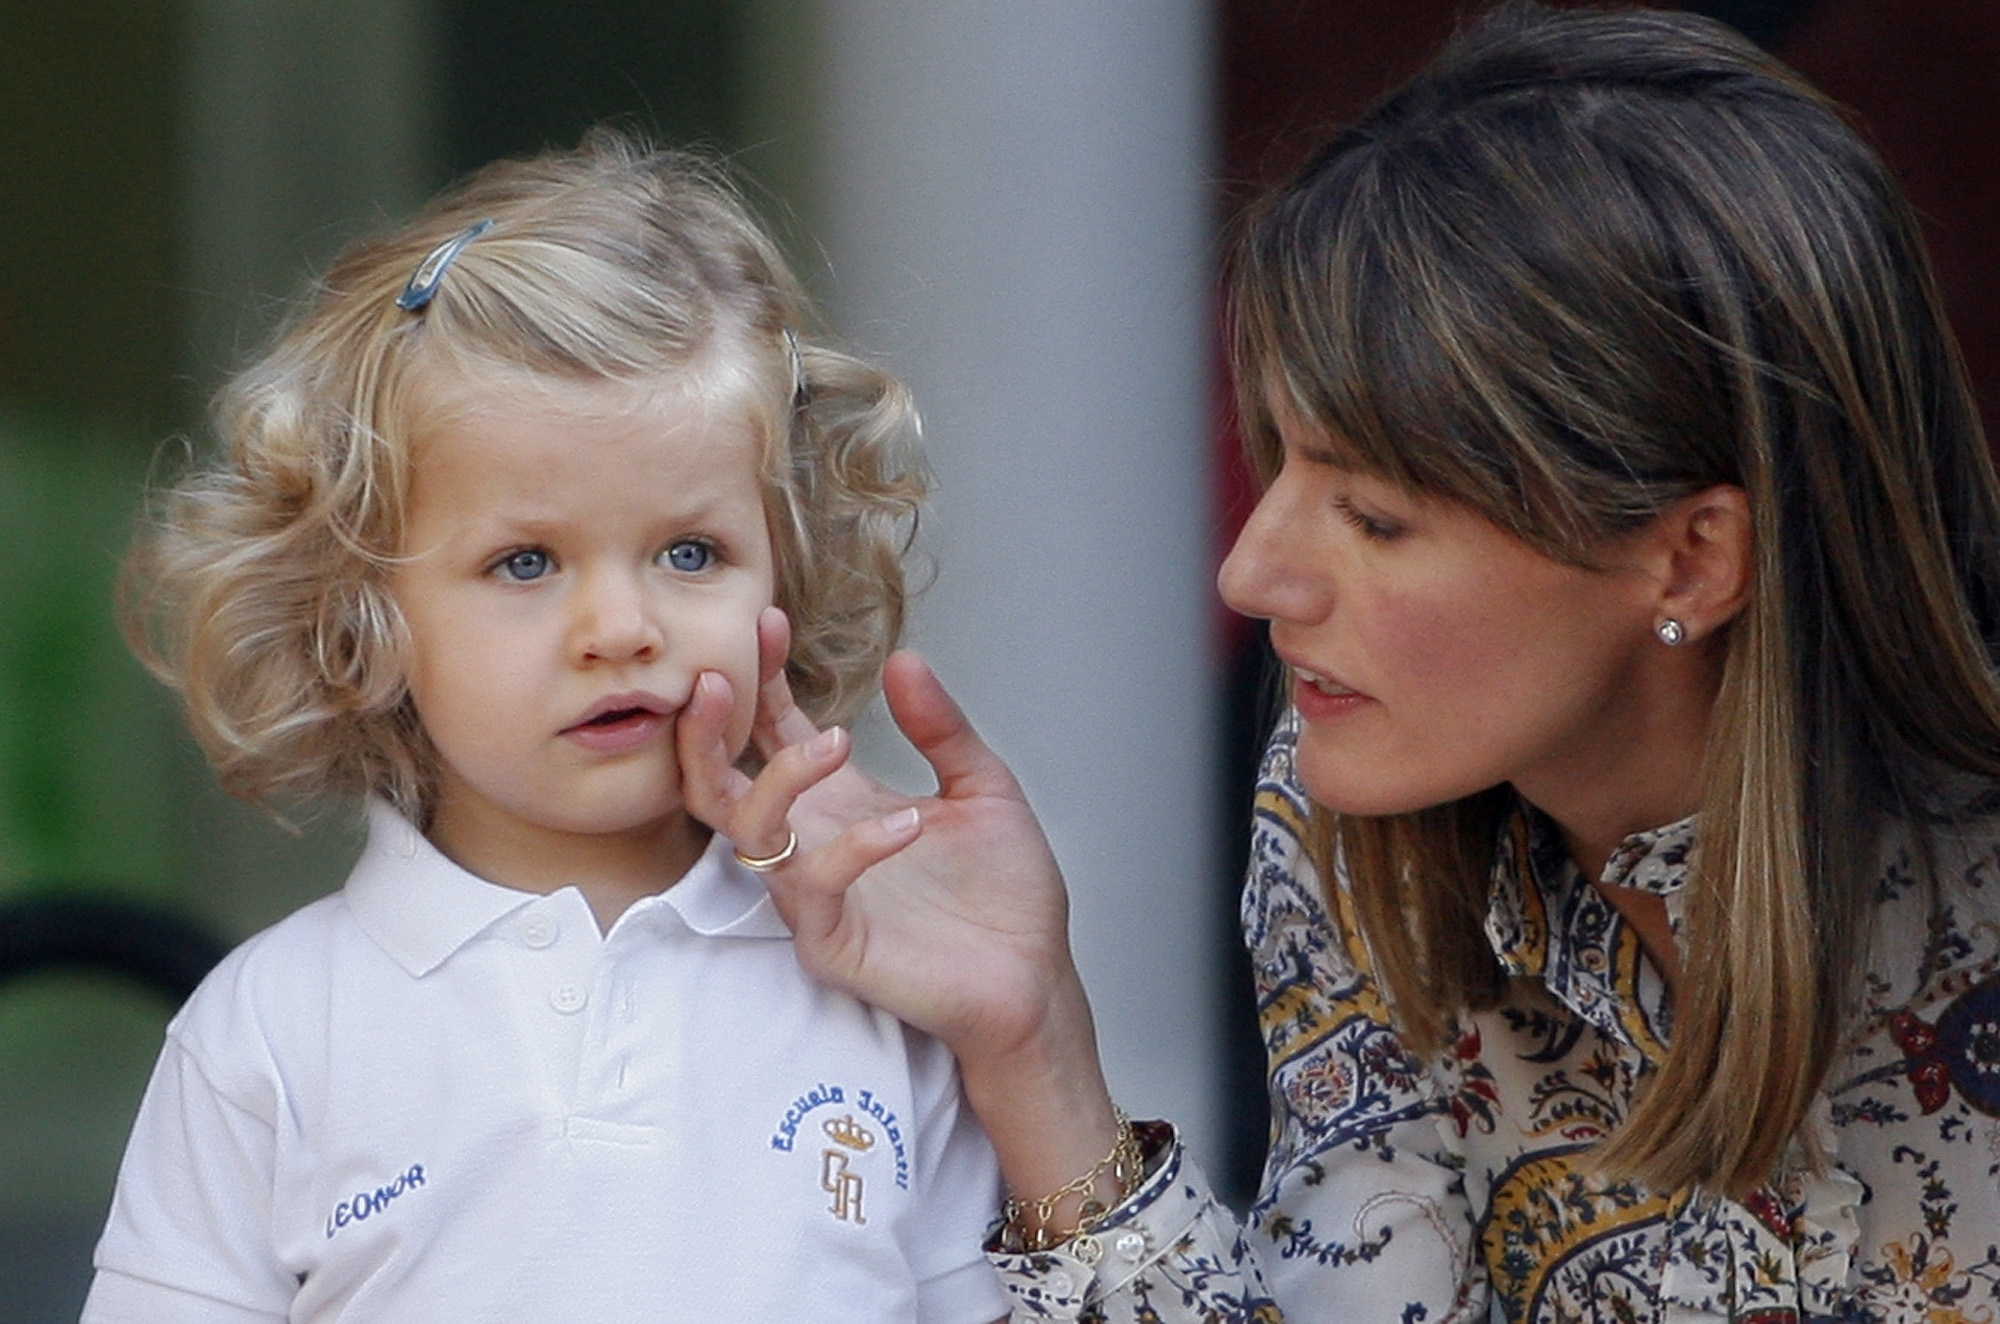 <p>Spain's Princess Letizia touches Princess Leonor to give her confidence as she faces photographers on her arrival to nursery school in El Pardo, outside Madrid, Friday, Sept. 7, 2007. (AP Photo/Daniel Ochoa de Olza)</p>